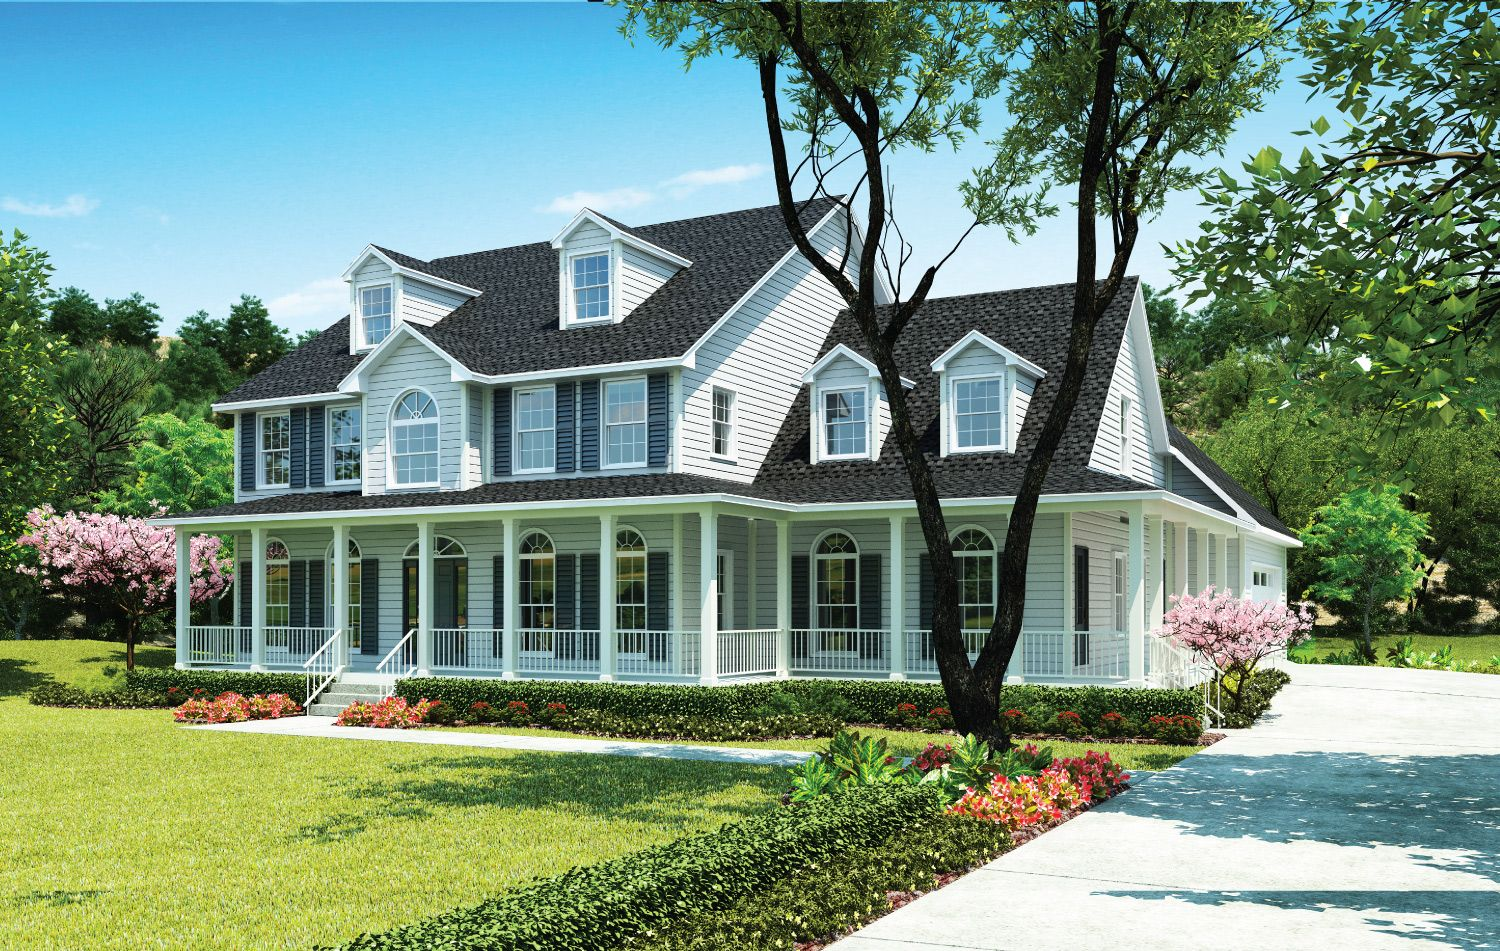 Single Family for Sale at Build On Your Lot - Anderson - Hanover W Garage A 4152 Clemson Blvd Ste E Anderson, South Carolina 29621 United States